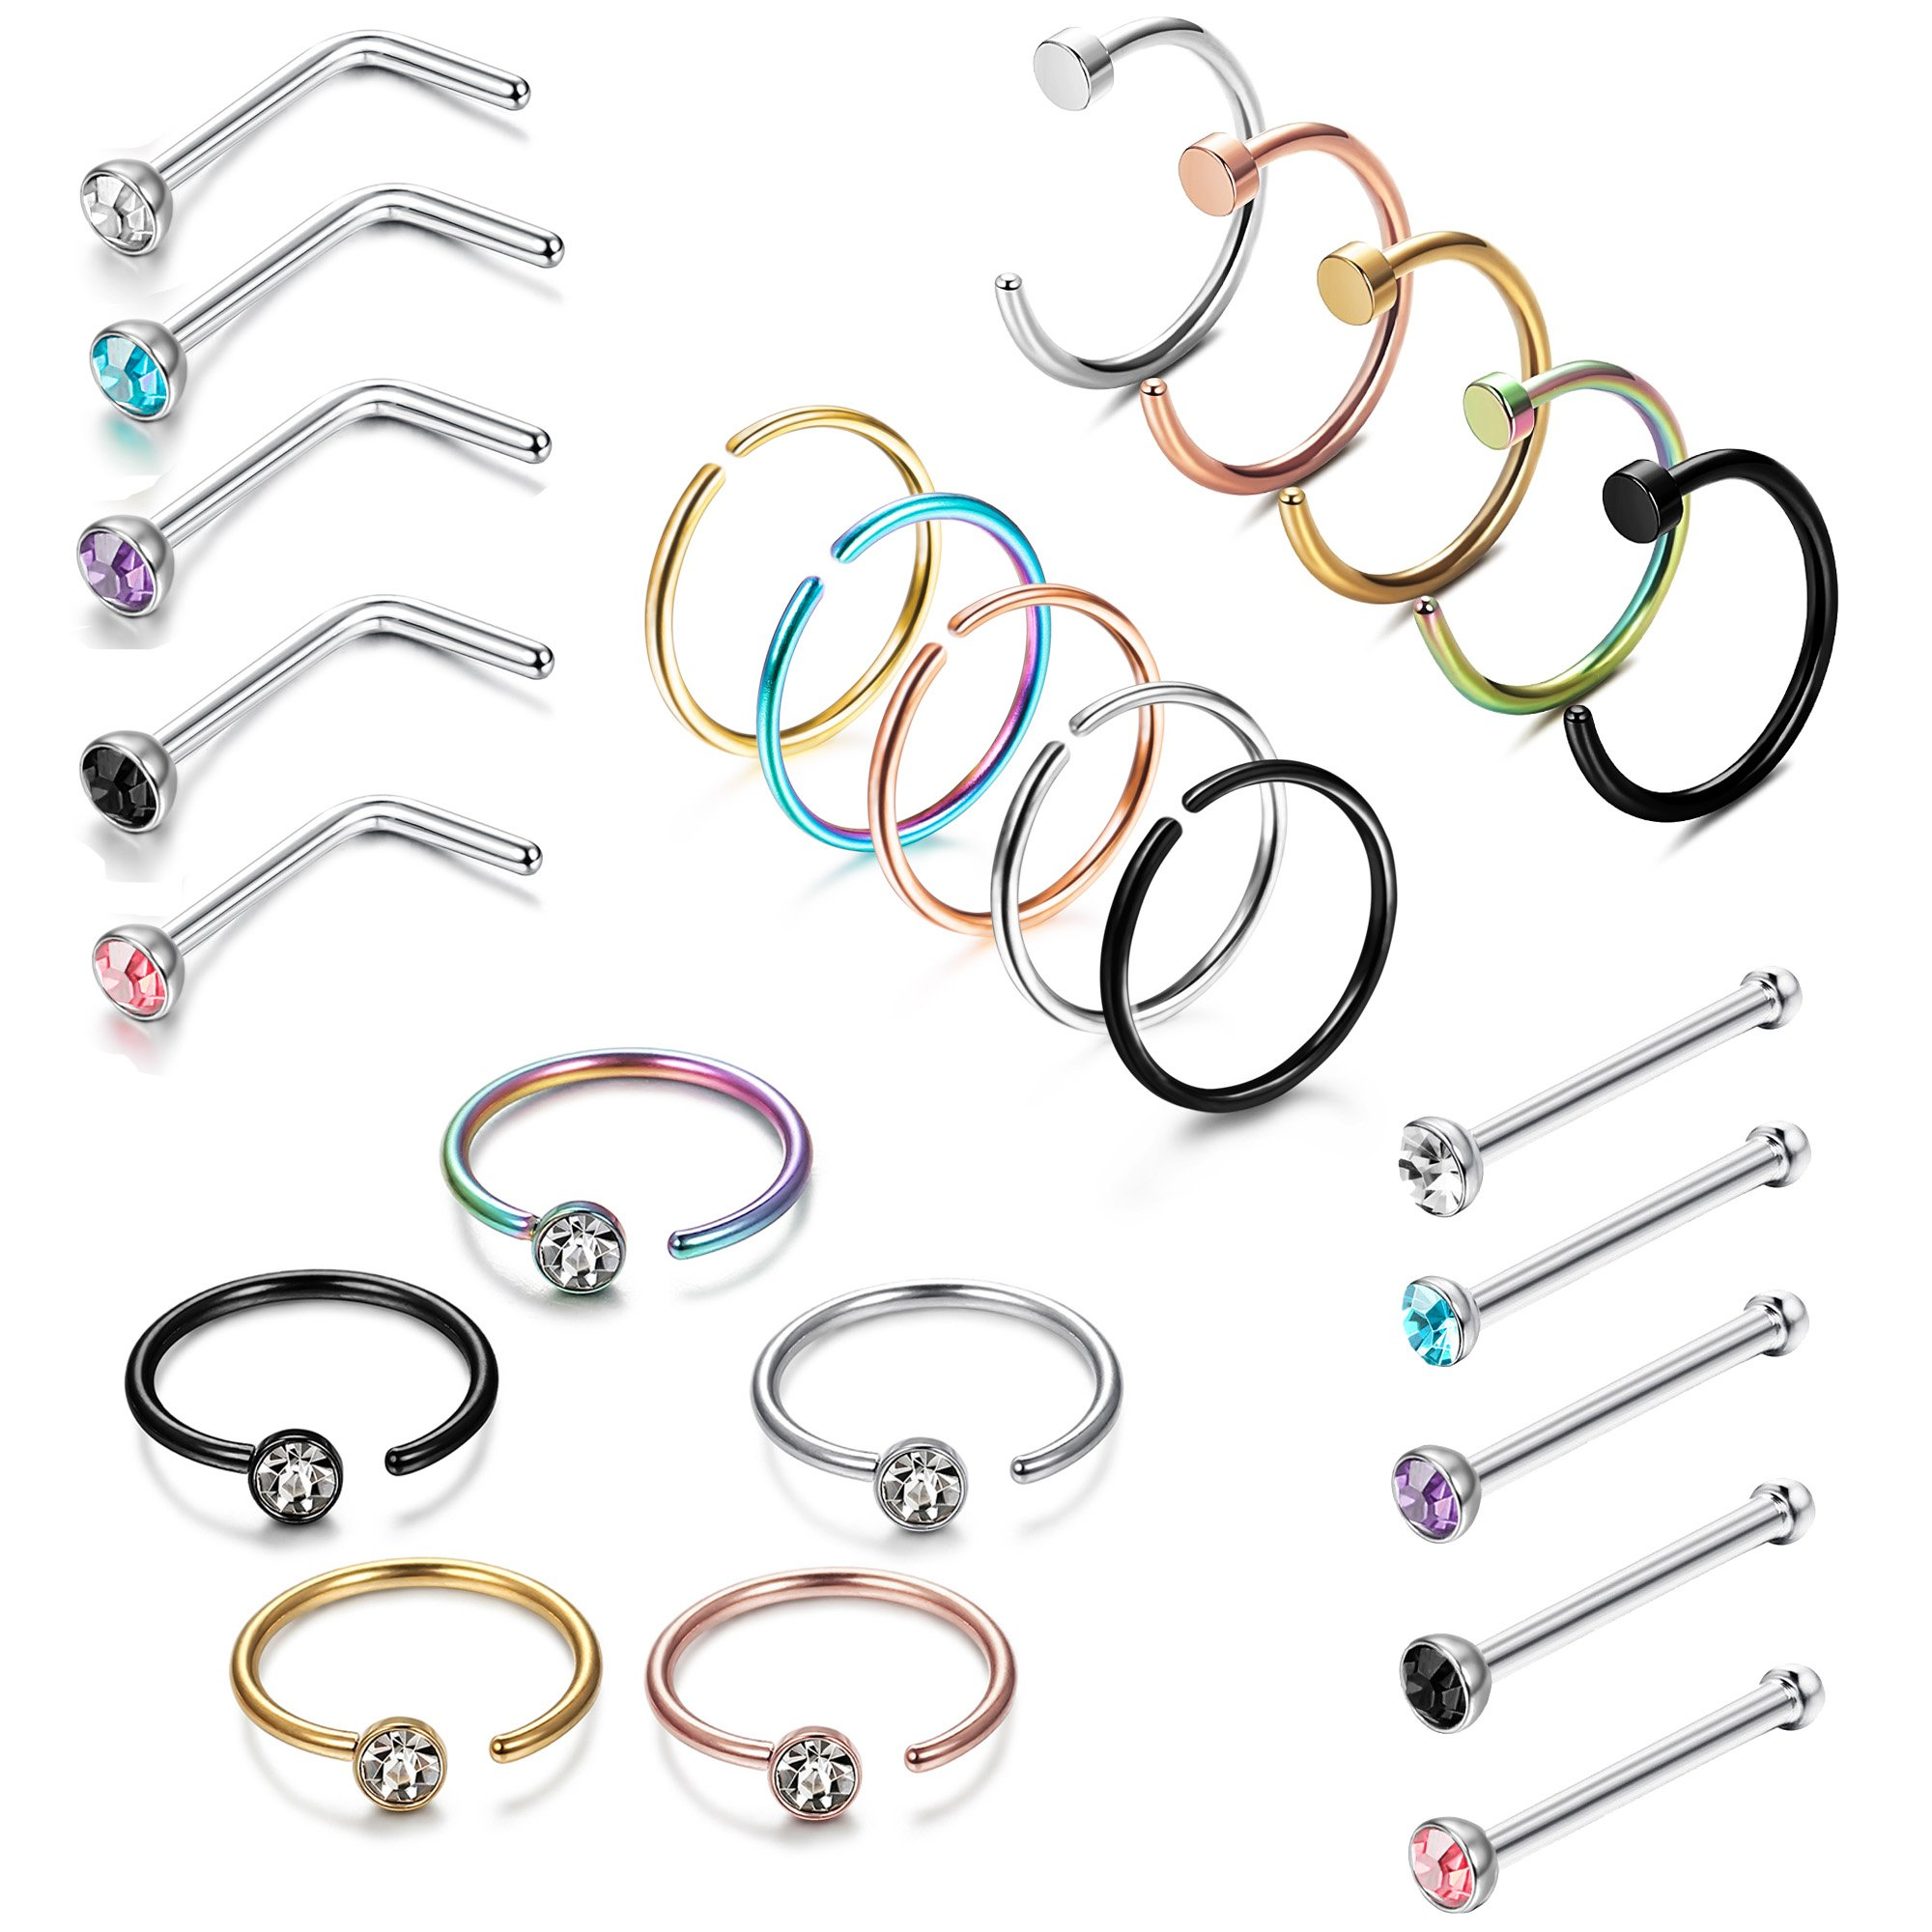 LOYALLOOK 25PCS Stainless Steel Fake Septum Ring Nose Hoop Piercing Clicker Ring Stud Nose Ring CZ Body Jewelry Piercing